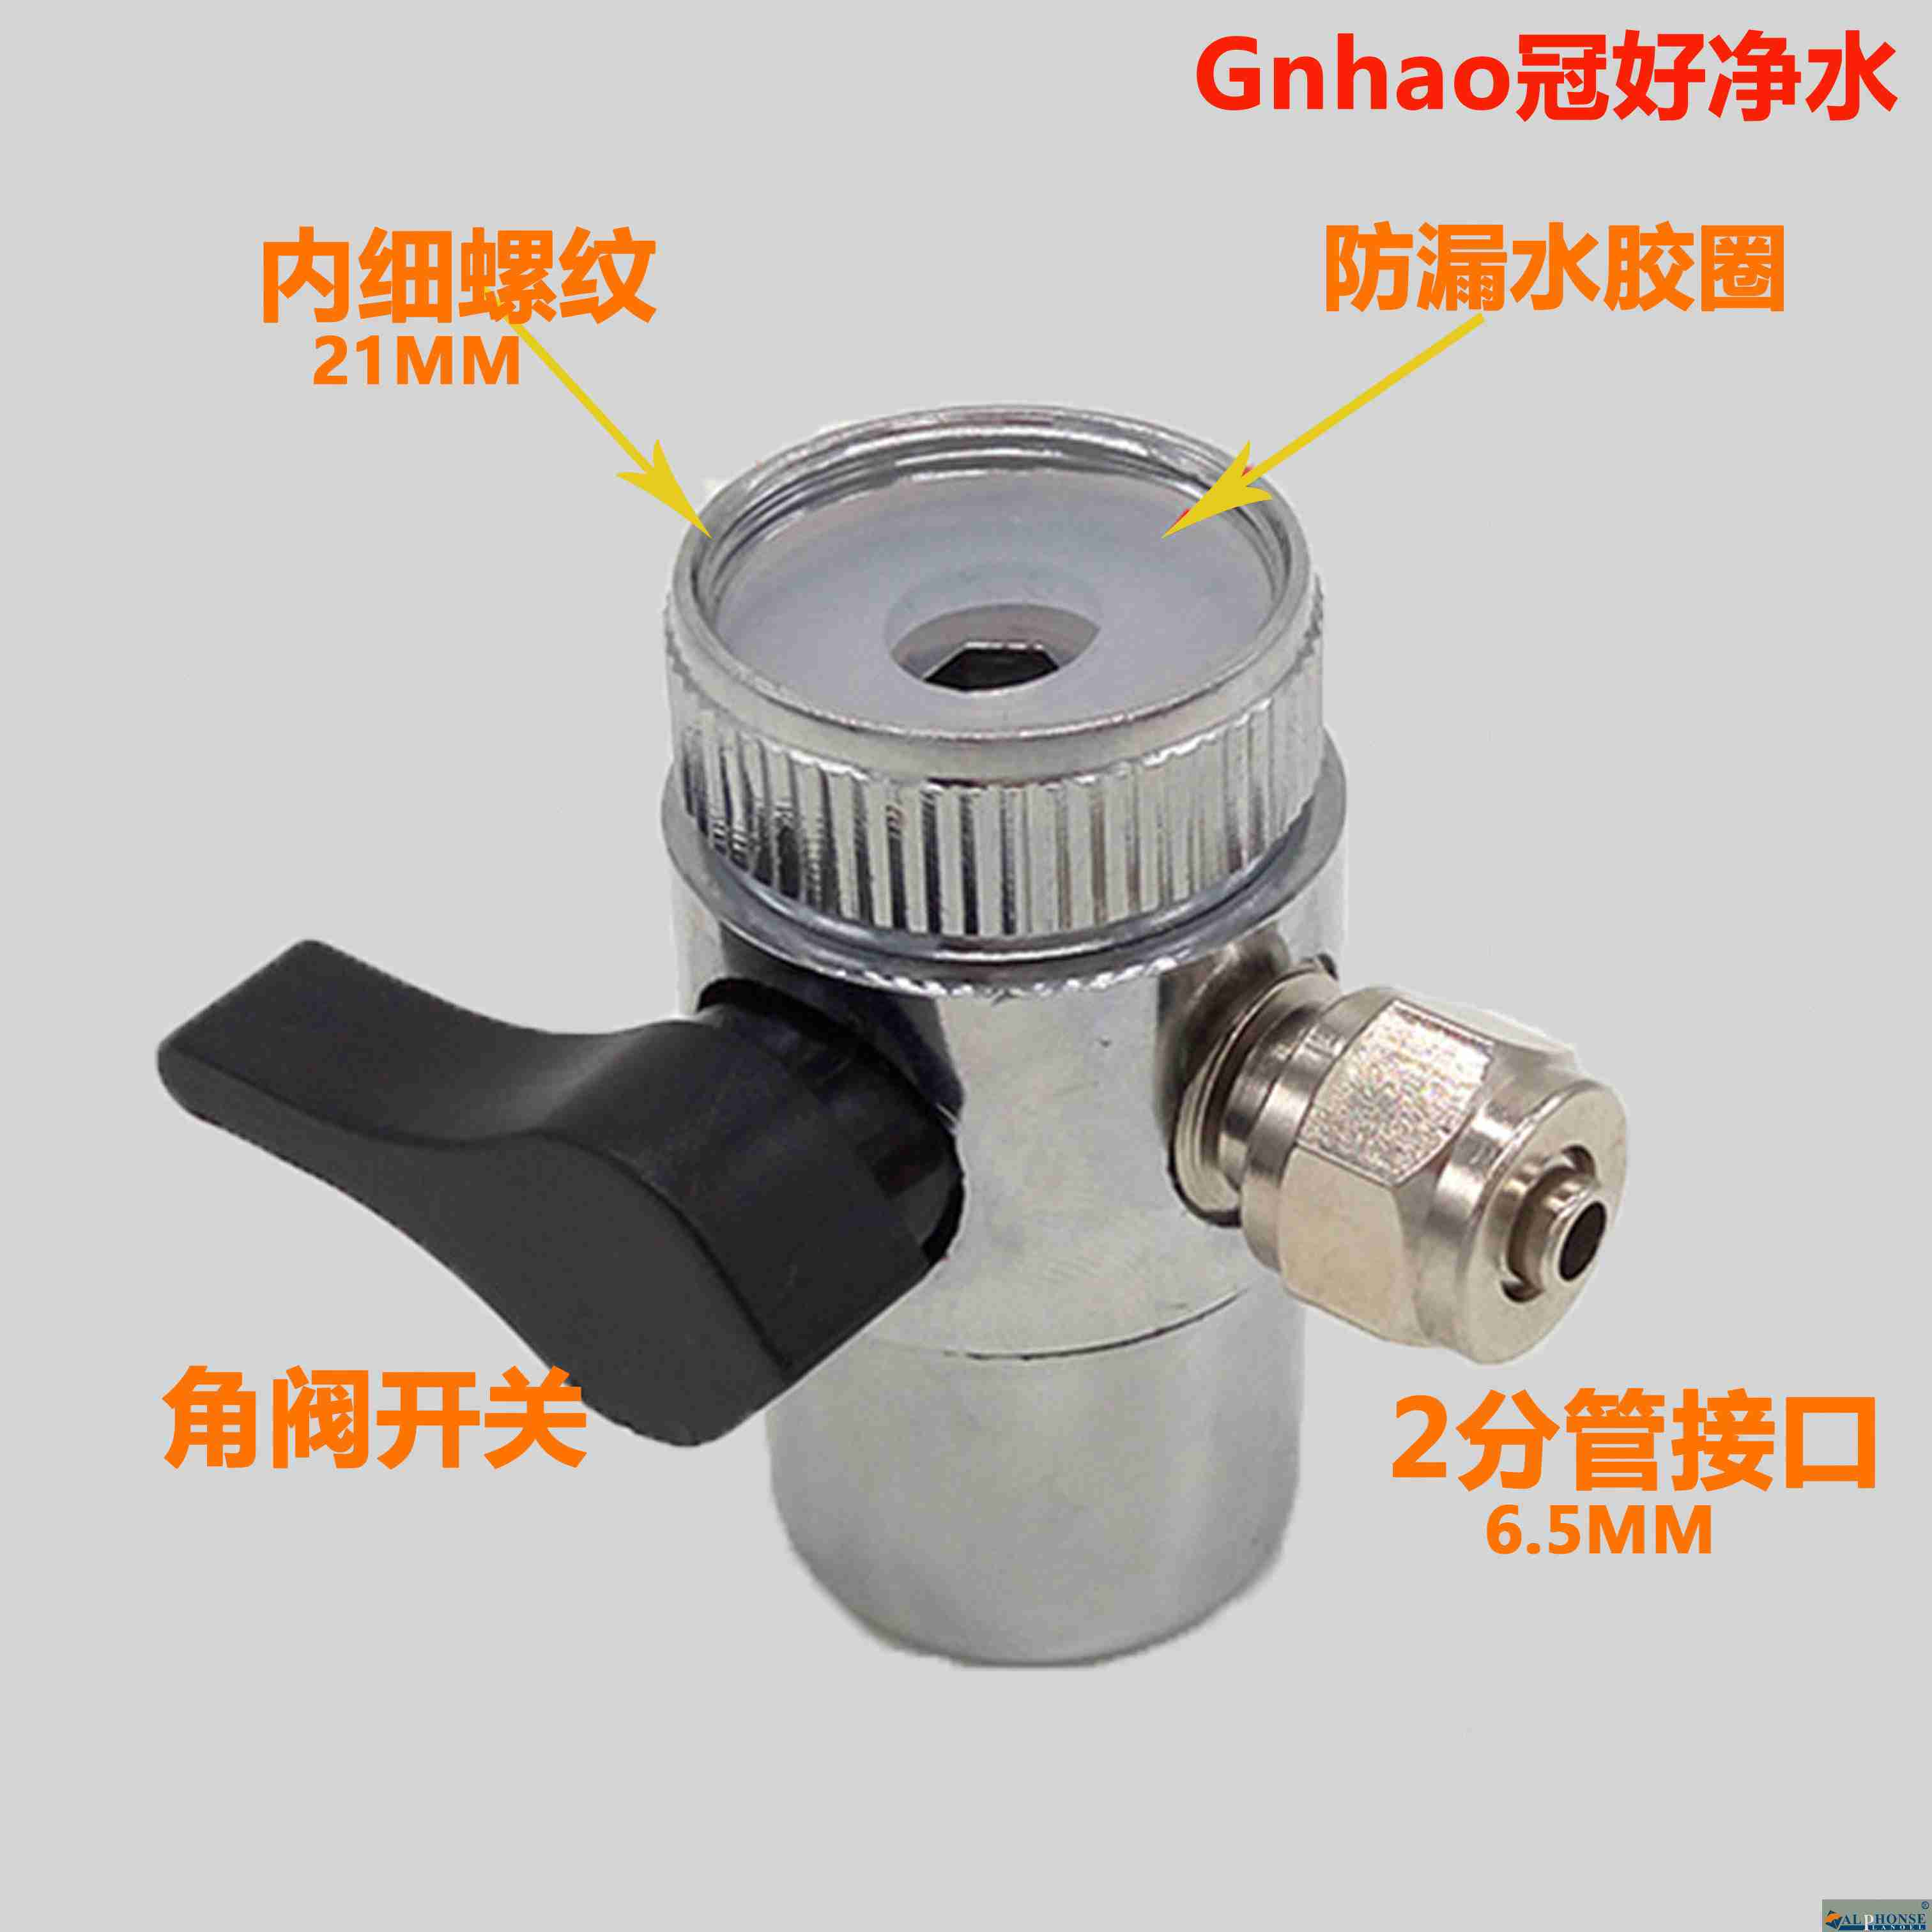 Water purifier, water purifier fittings, faucet switch valve, three way change-over valve, 2 point single cut valve water separator joint